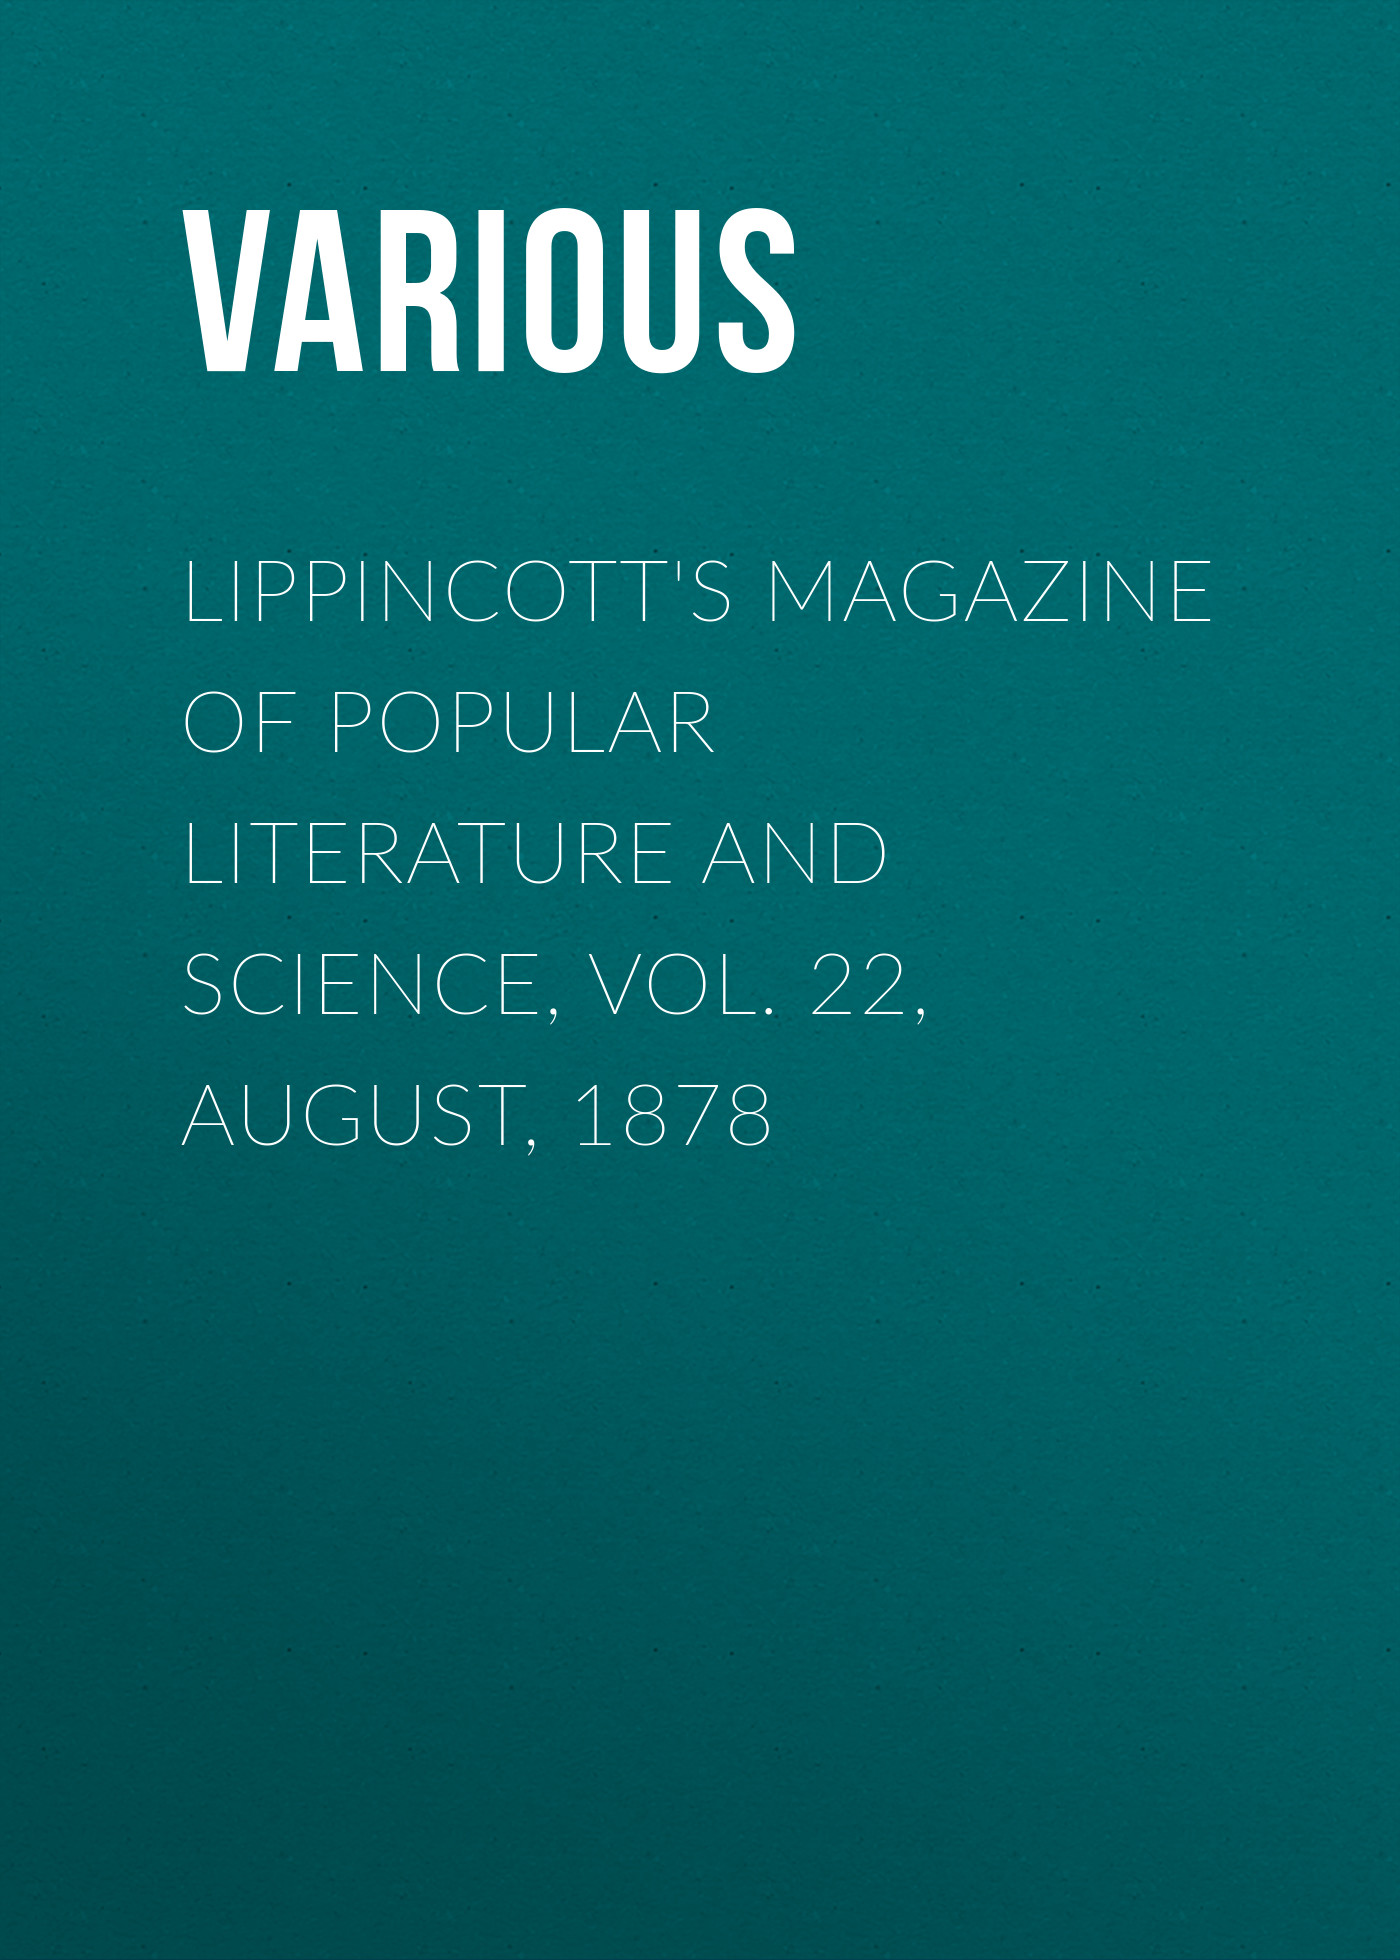 Various Lippincott's Magazine of Popular Literature and Science, Vol. 22, August, 1878 ec weird science vol 1